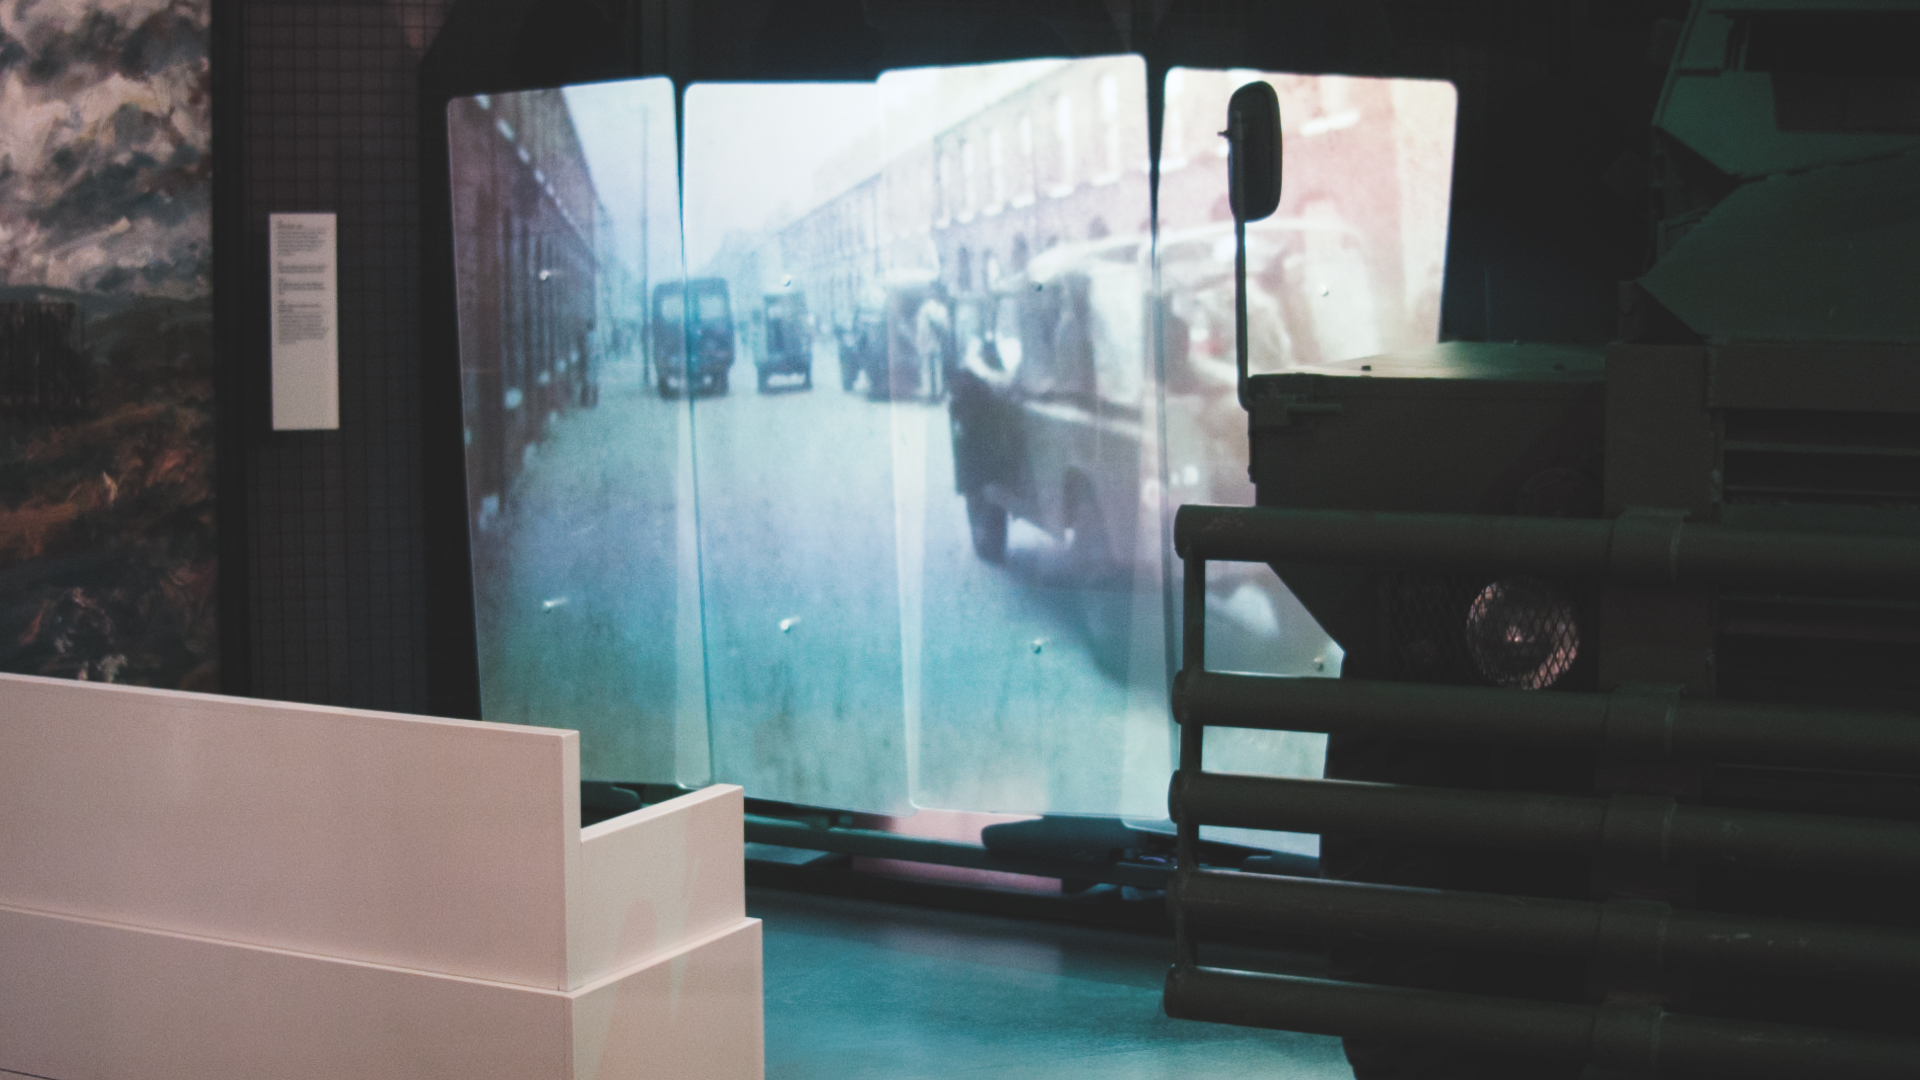 """The completed look of the projection mapped """"Conflict in our streets"""" video onto perspex riot shields in the Northern Ireland exhibition space."""